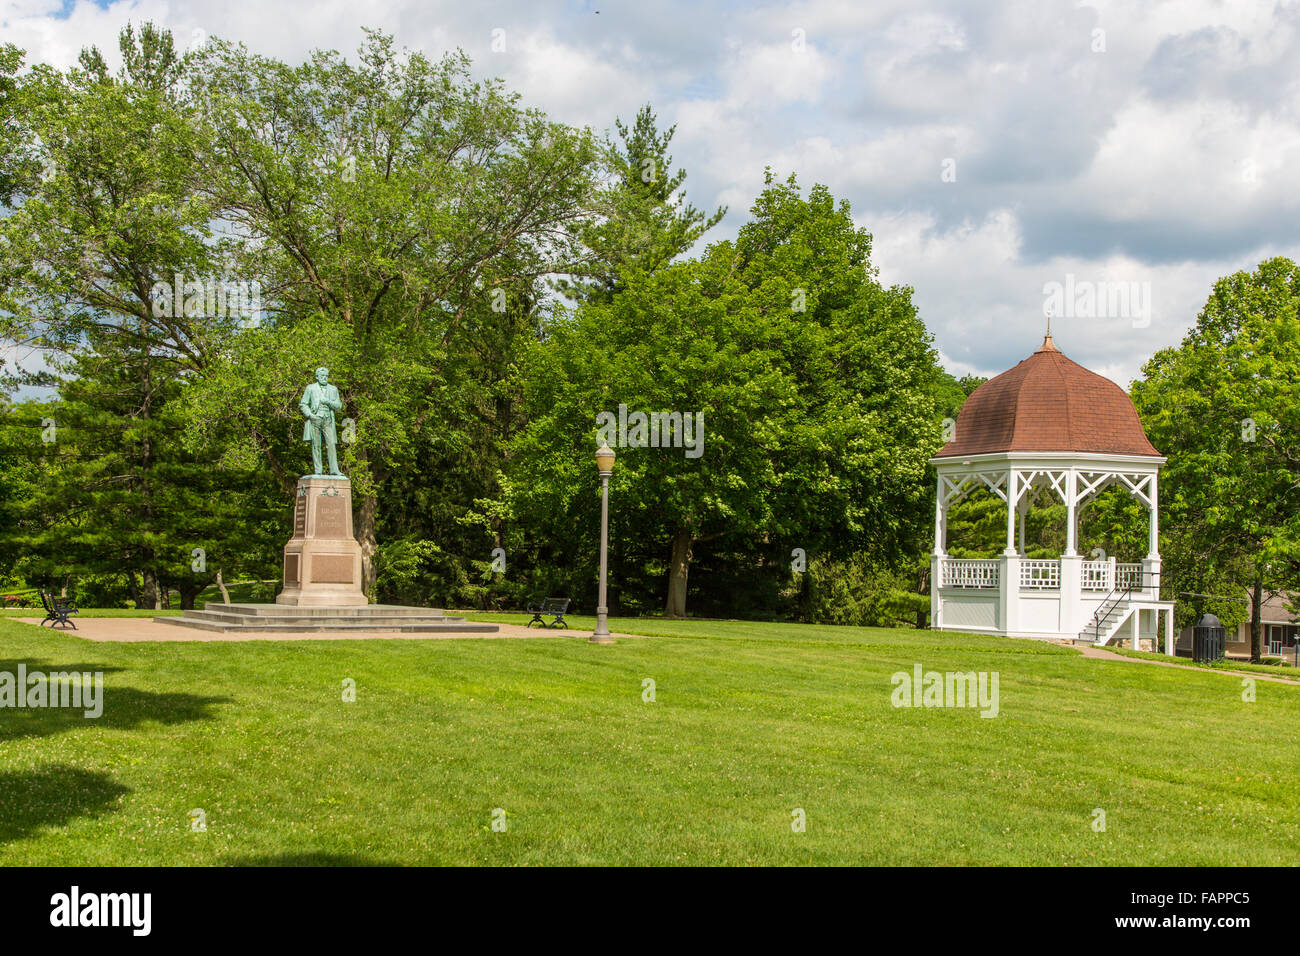 Grant Park on bank of Galena River in Galena Illinois - Stock Image